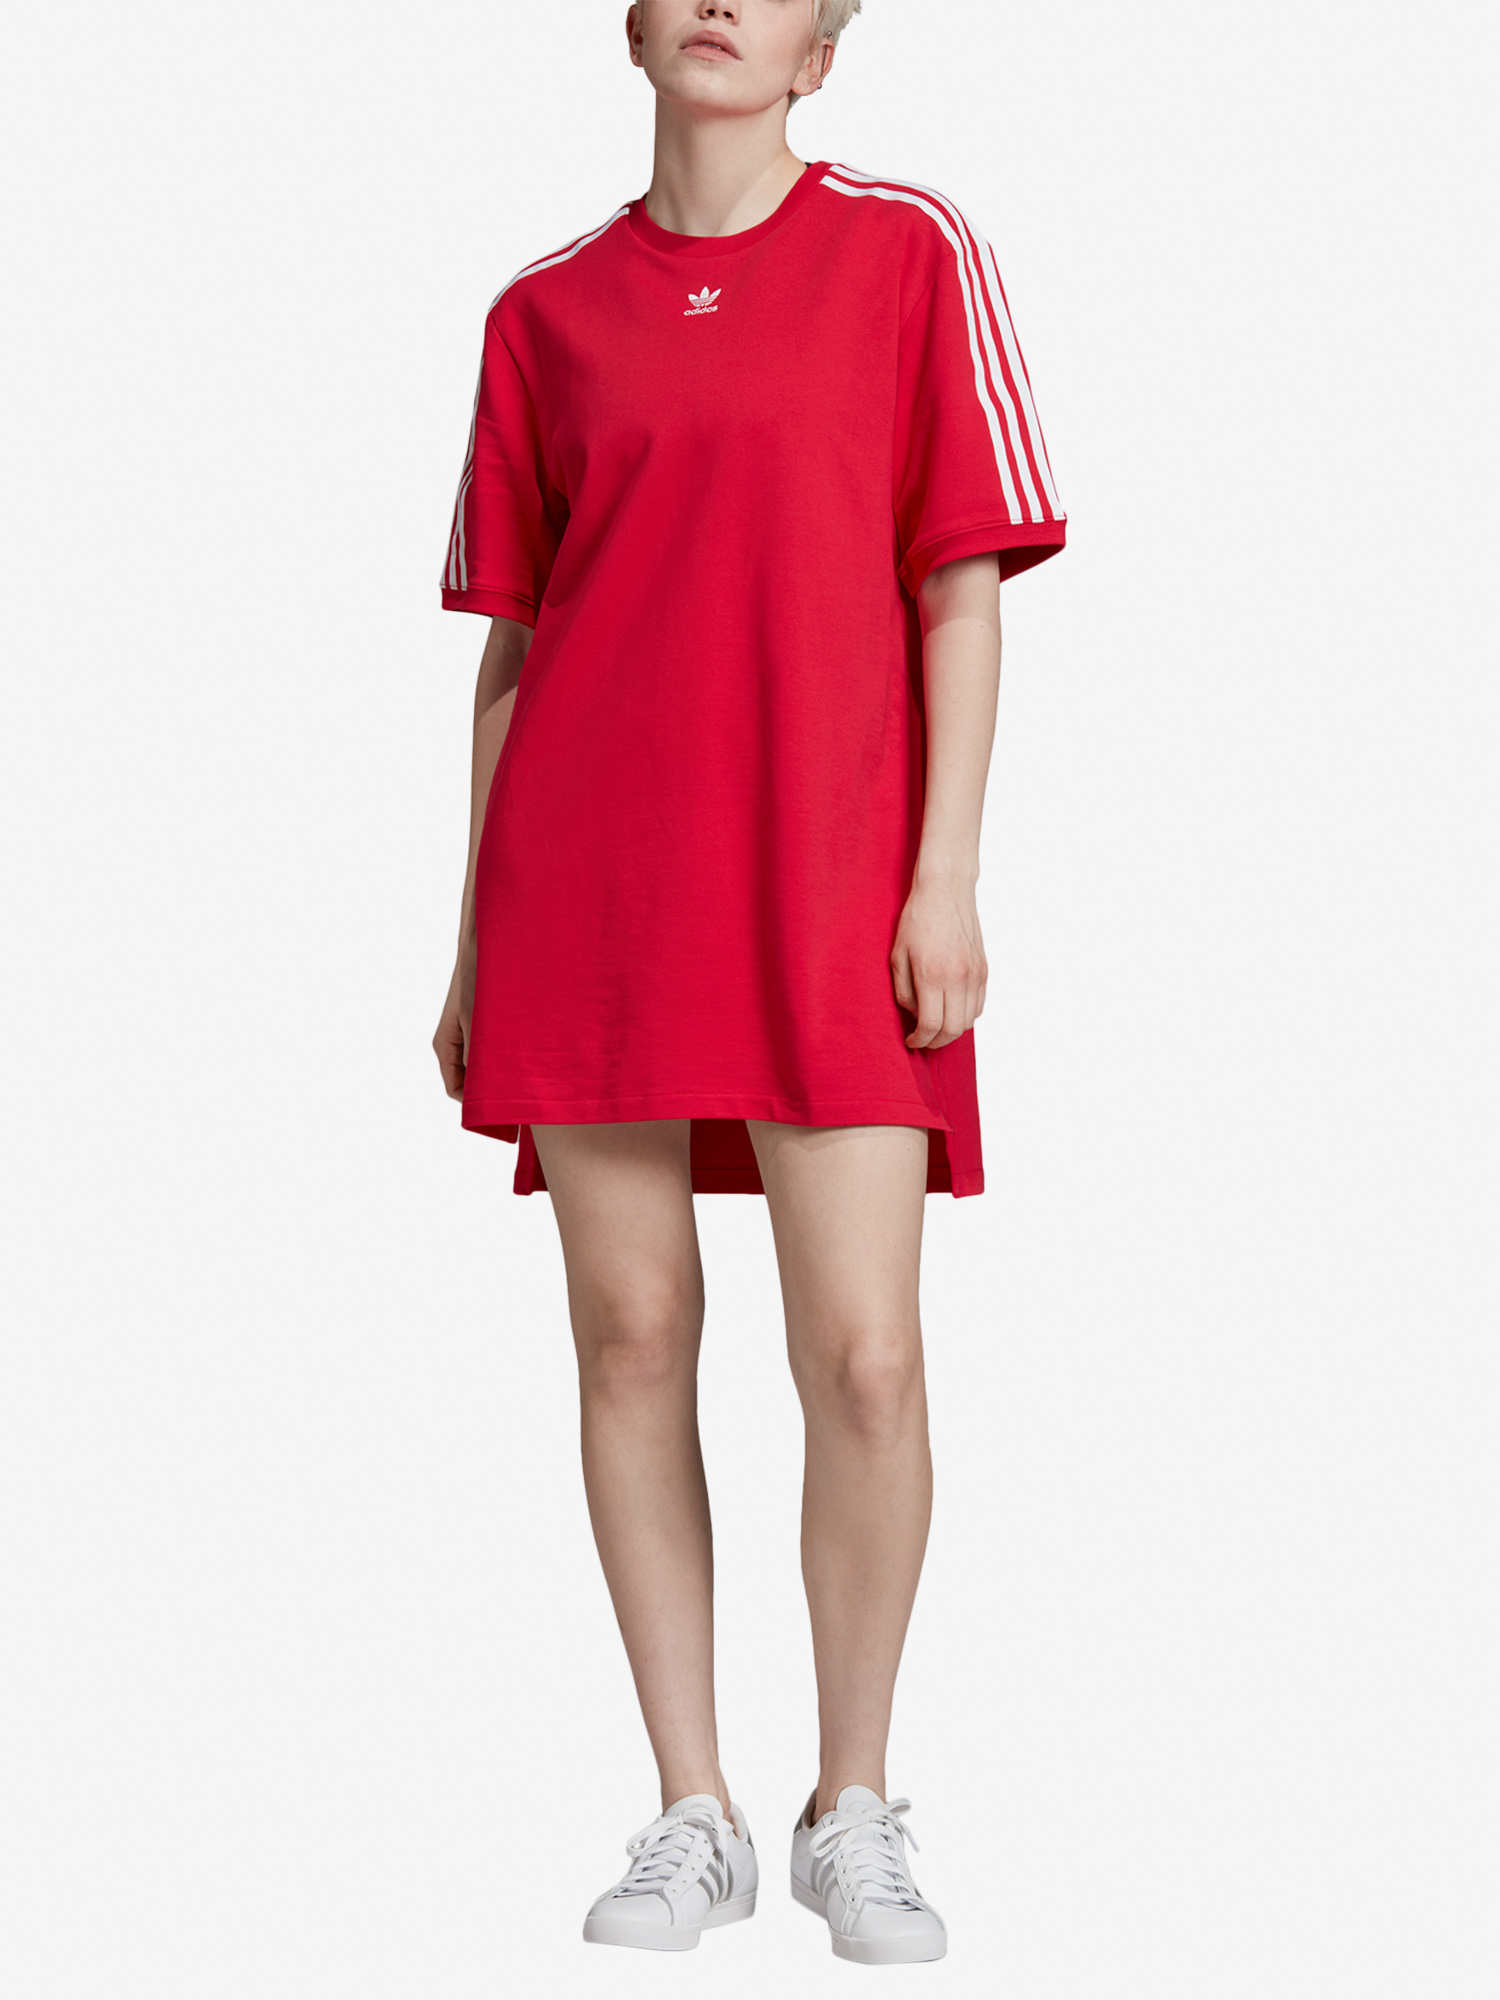 Šaty adidas Originals Tee Dress Barevná